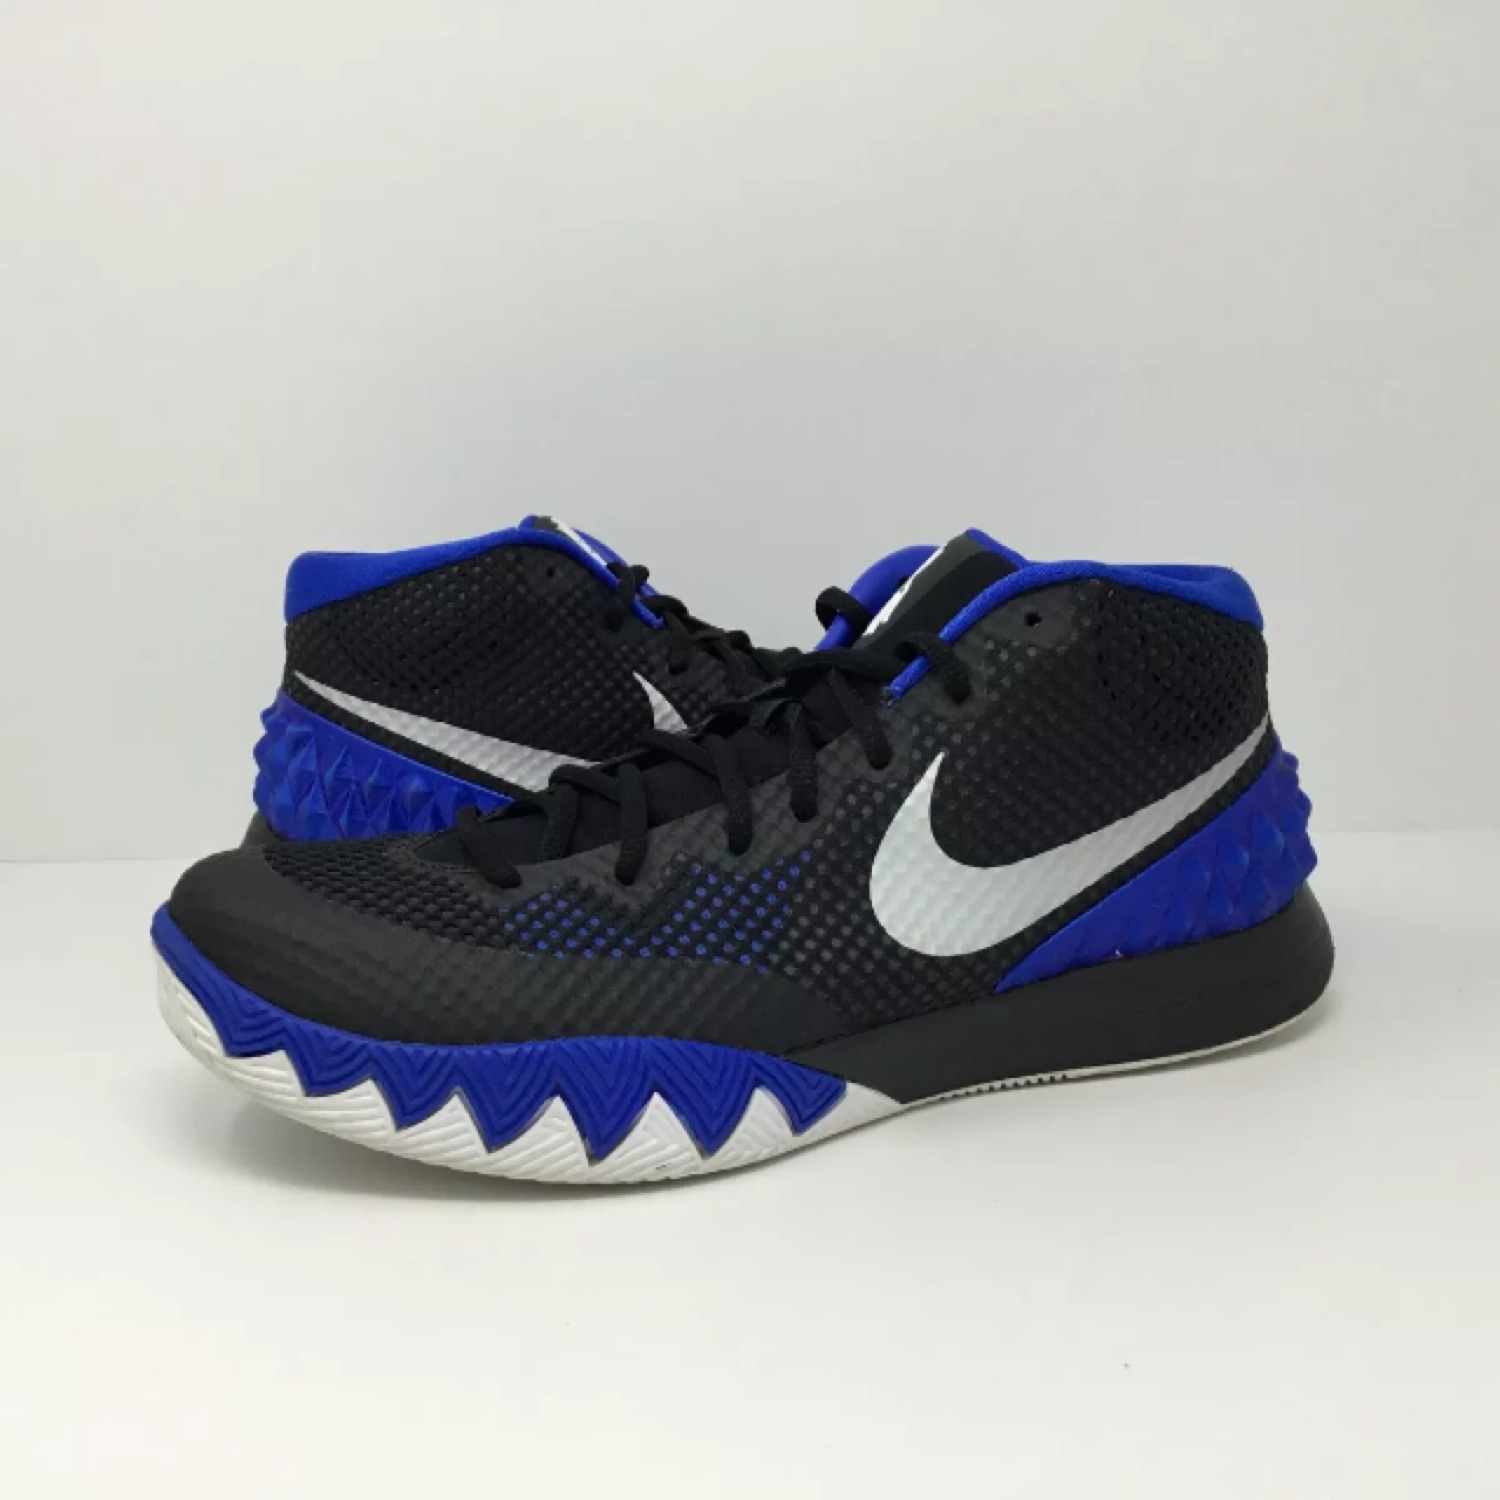 wholesale dealer d9db5 6977a Nike Kyrie 1 Brotherhood Size 11.5 - Black Blue